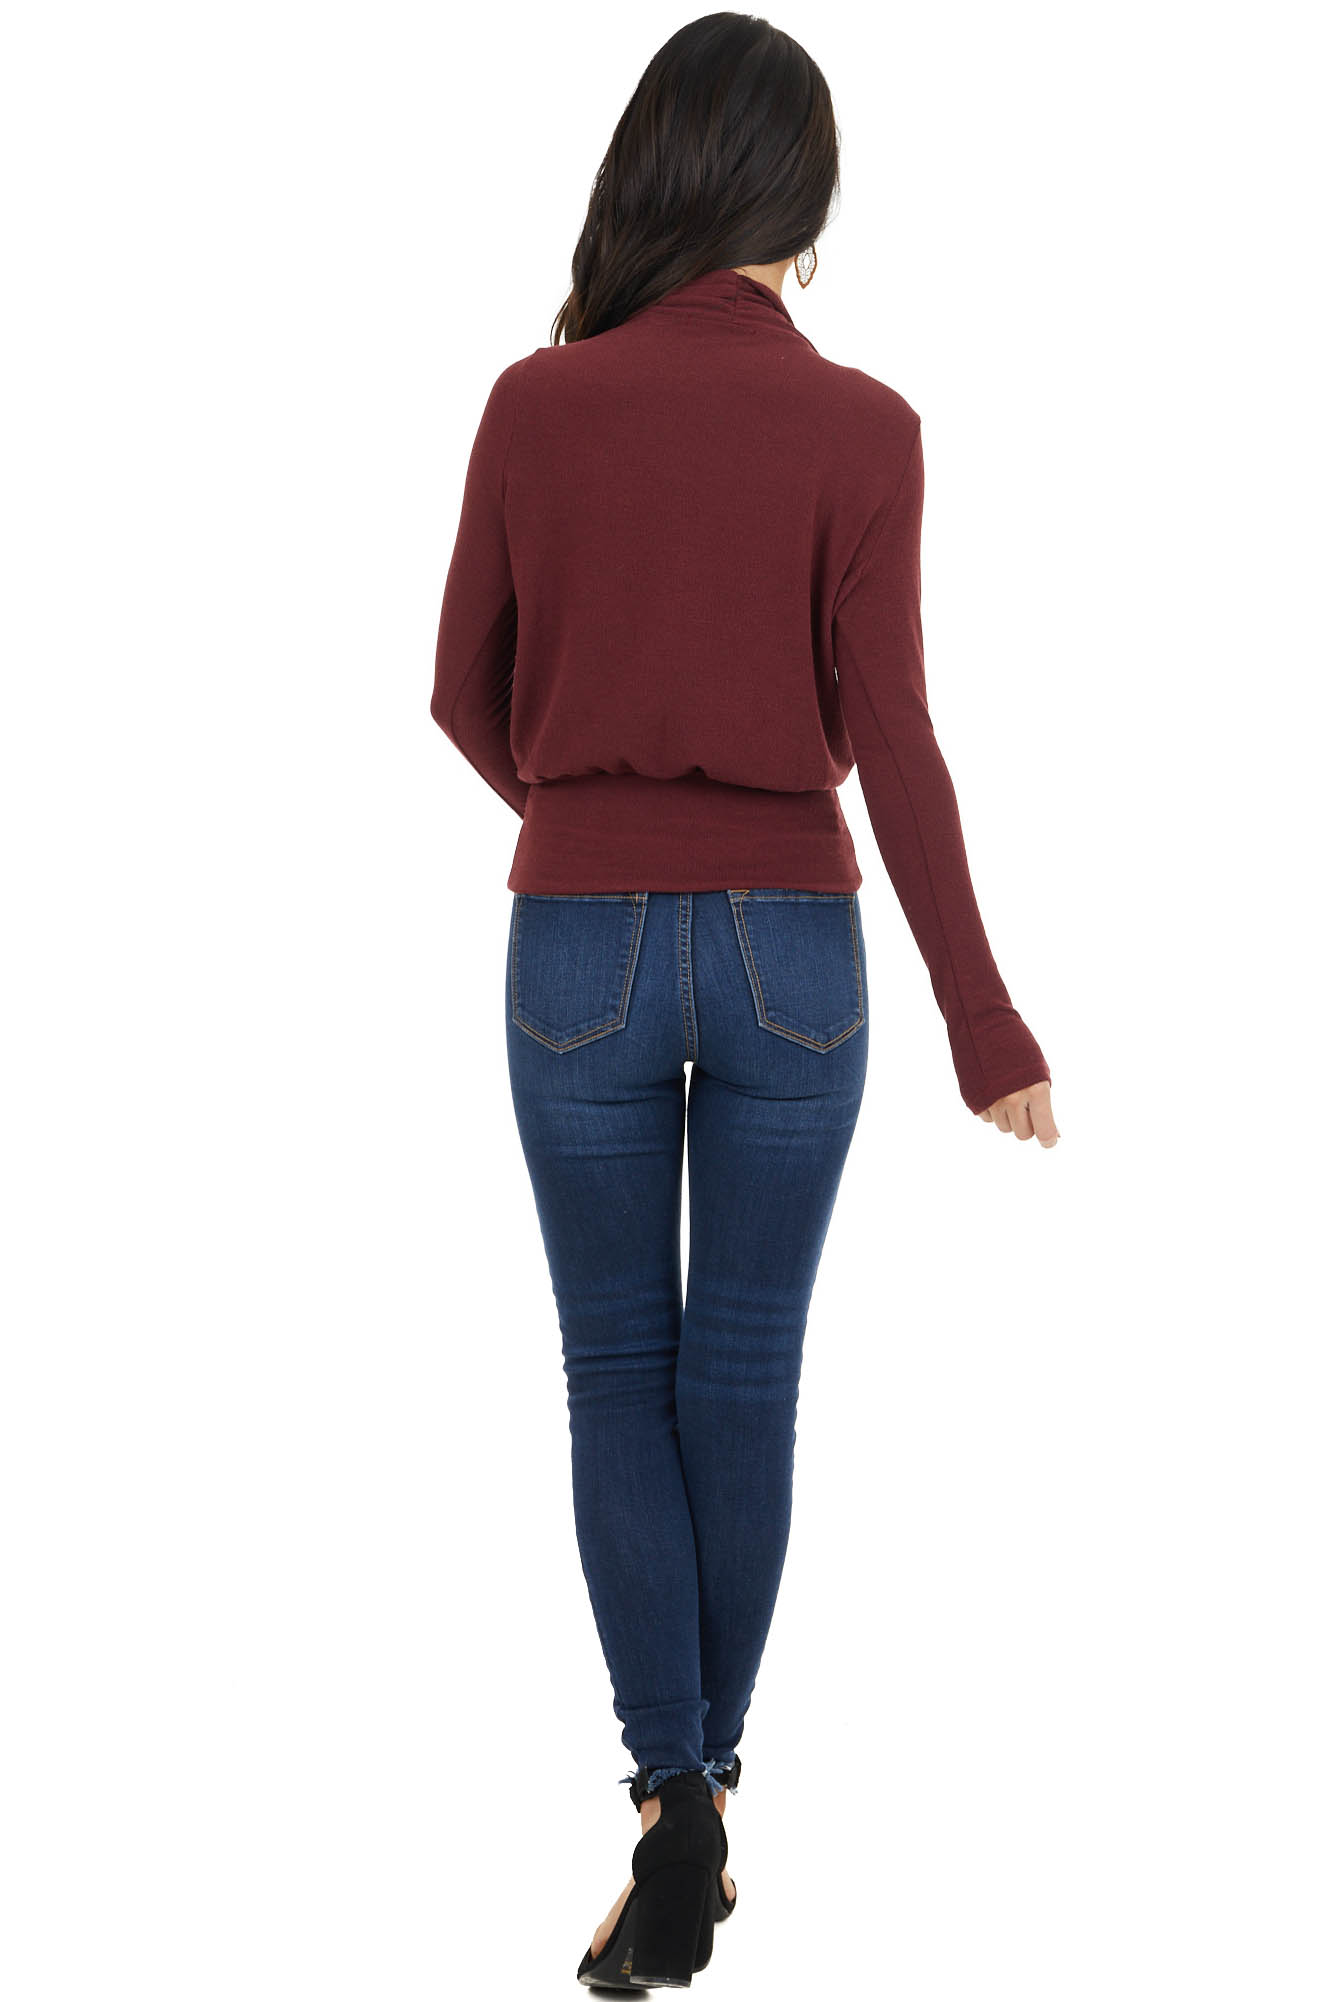 Wine Stretchy Knit Banded Surplice Long Sleeve Sweater